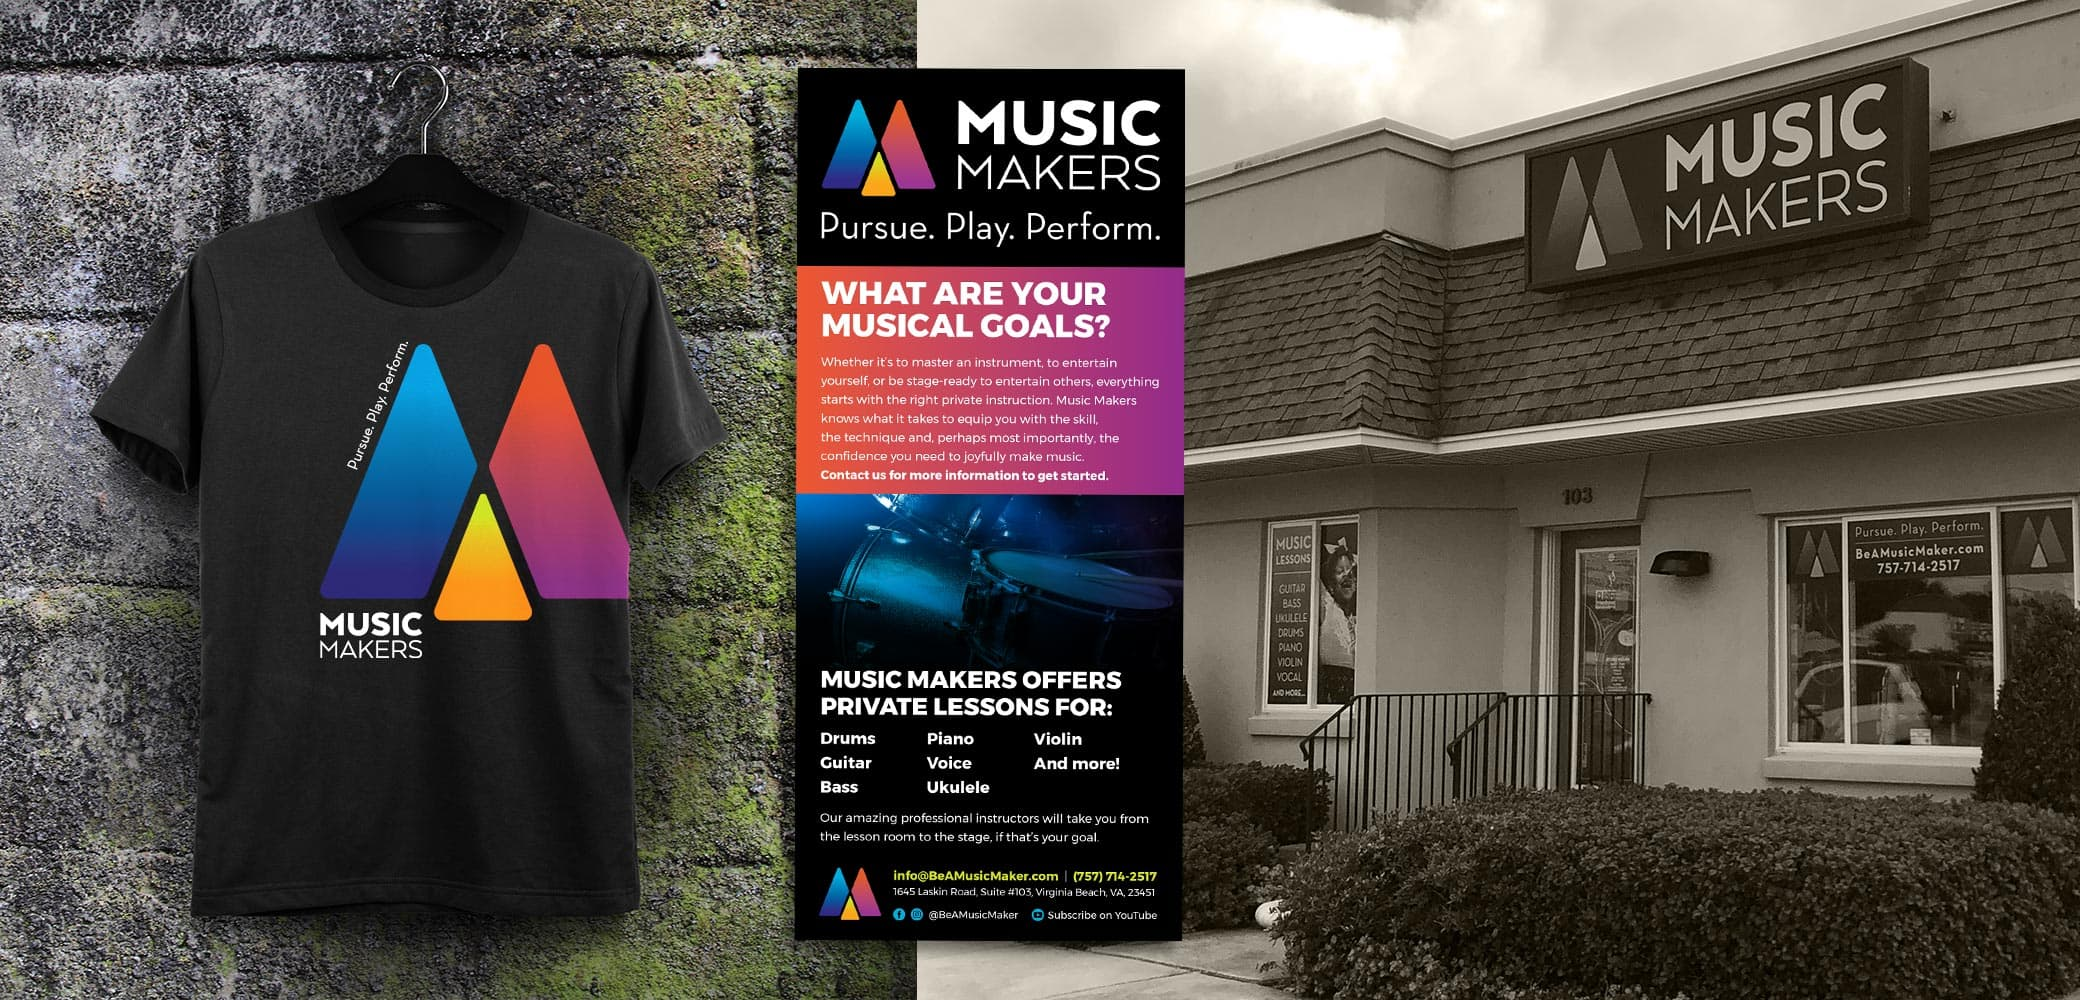 Music Makers Brand and Marketing Collateral Design by Red Chalk Studios